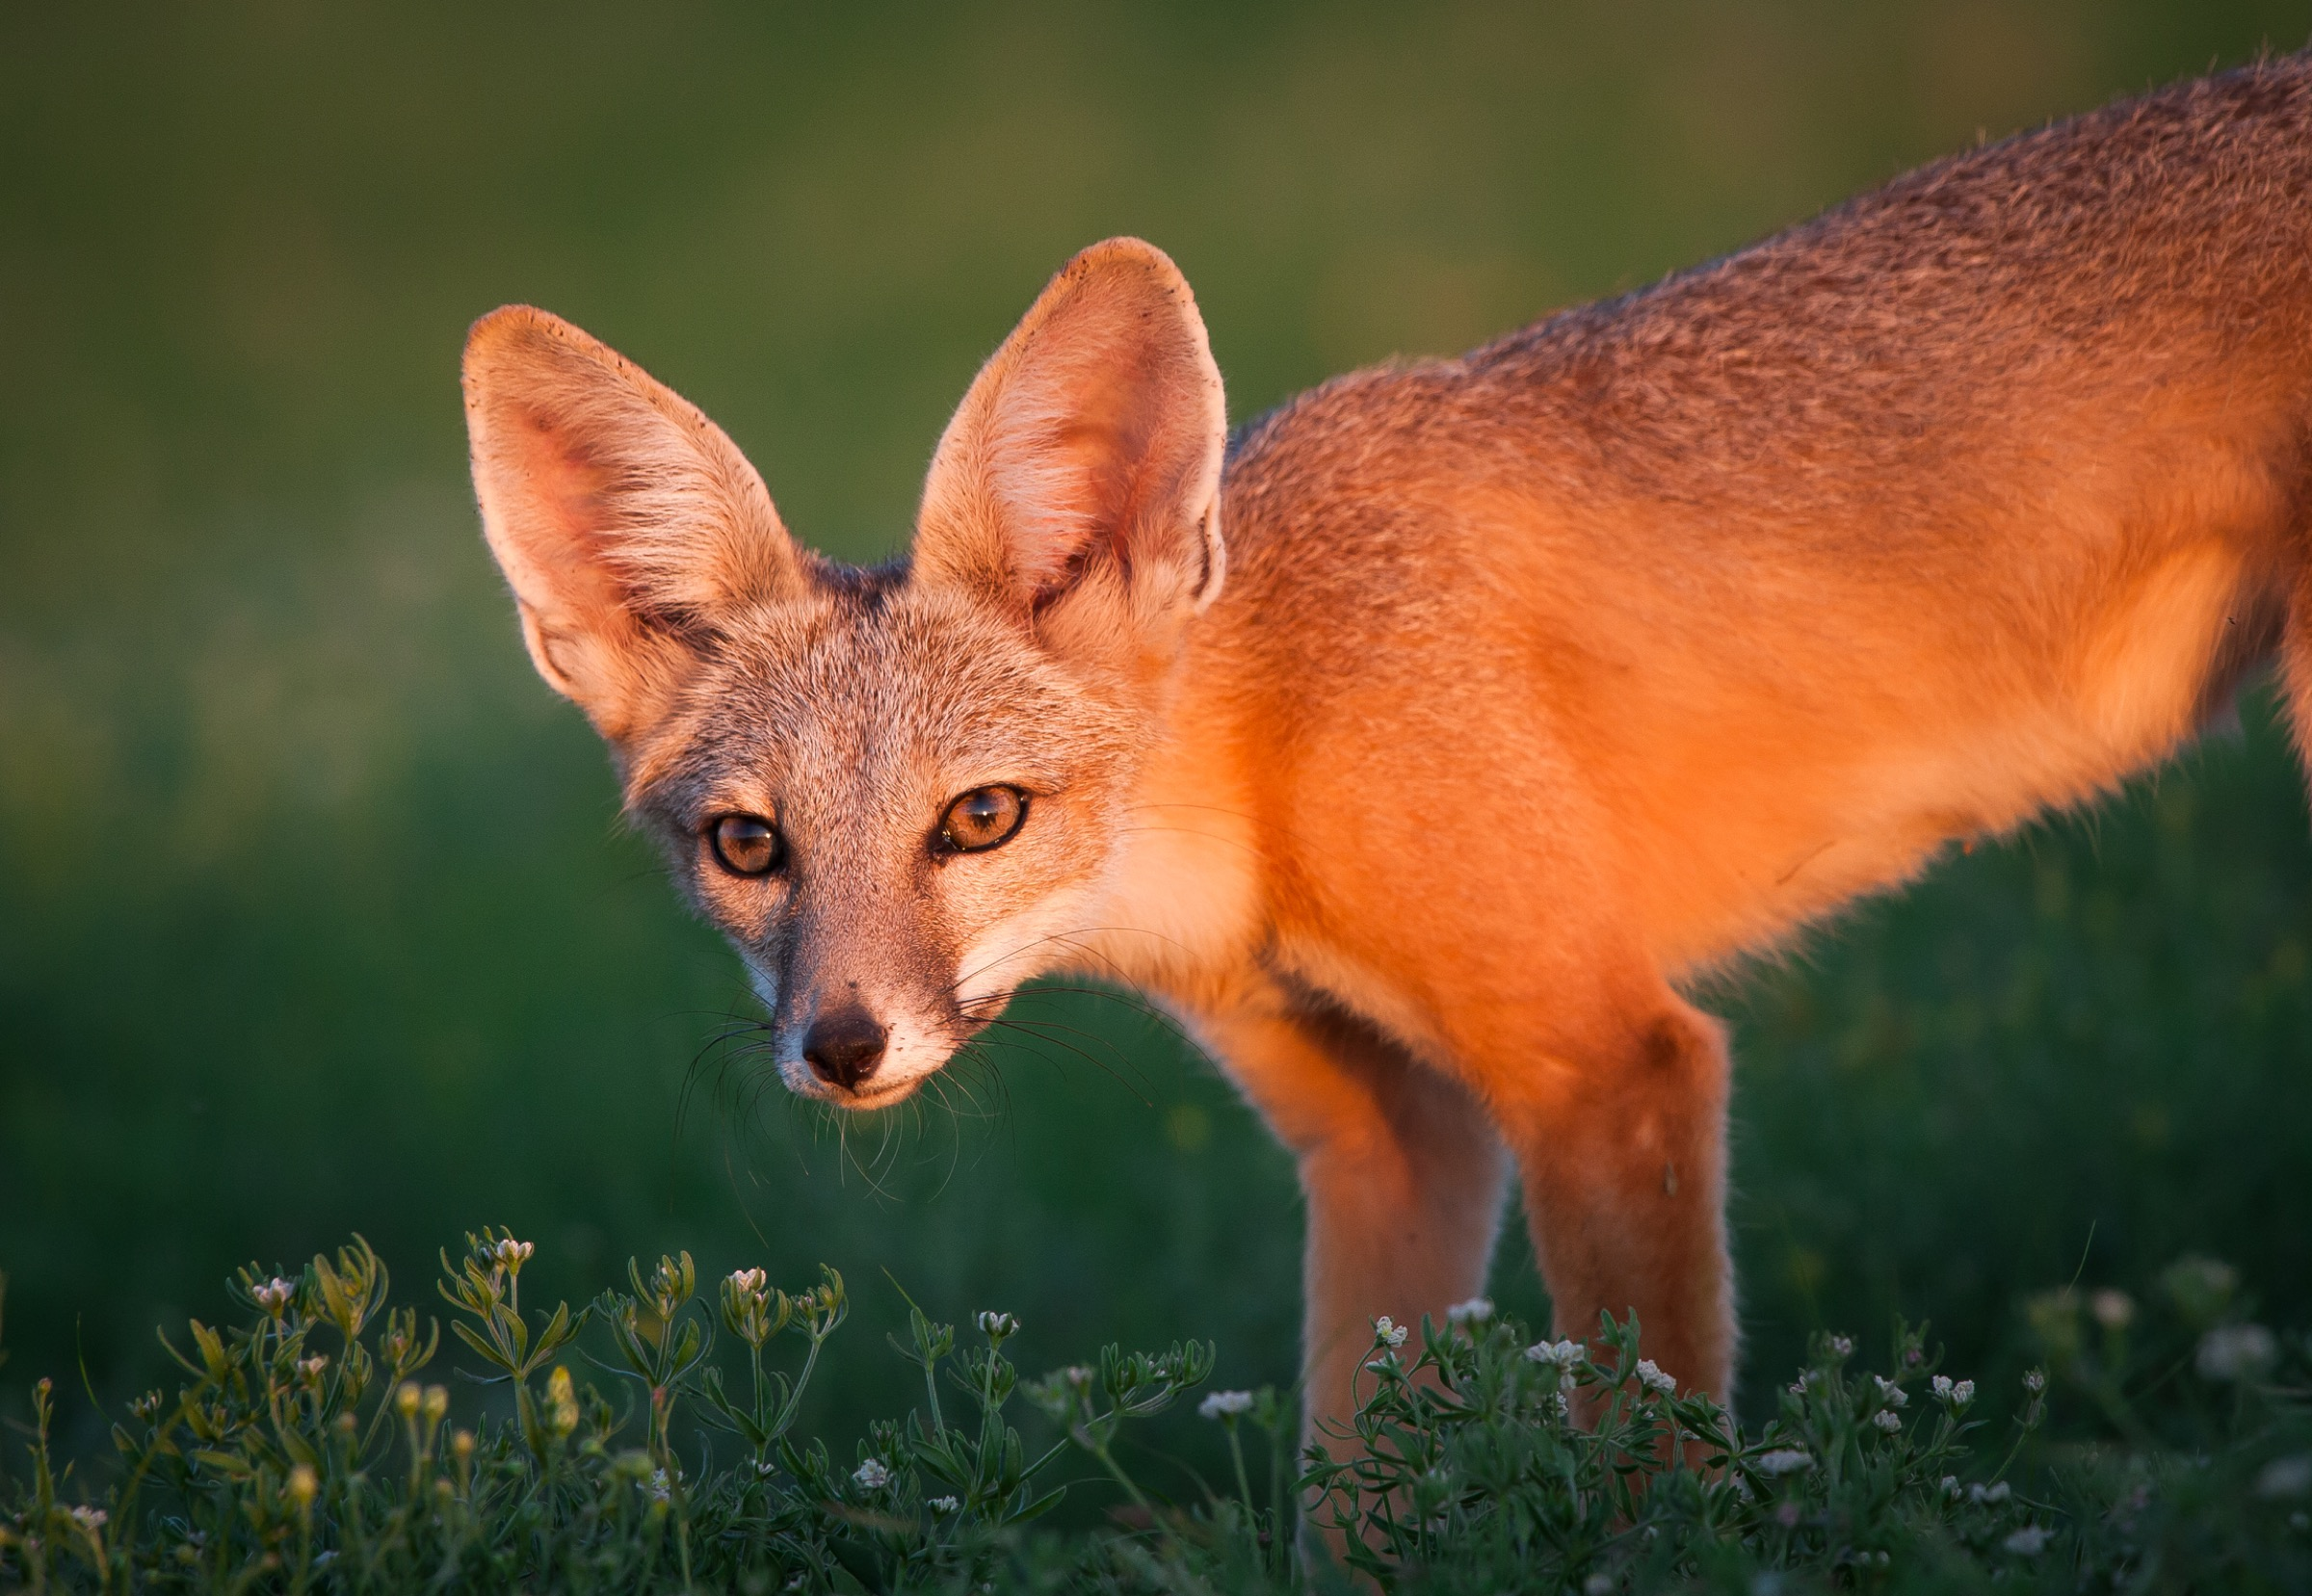 A young kit fox (Vulpes macrotis) stands alert in Janos grassland, Chihuahua, Mexico. This landscape is one of Mexico's newest biosphere reserves, a status that recognizes the area's rich biological diversity. Photograph by Krista Schyler